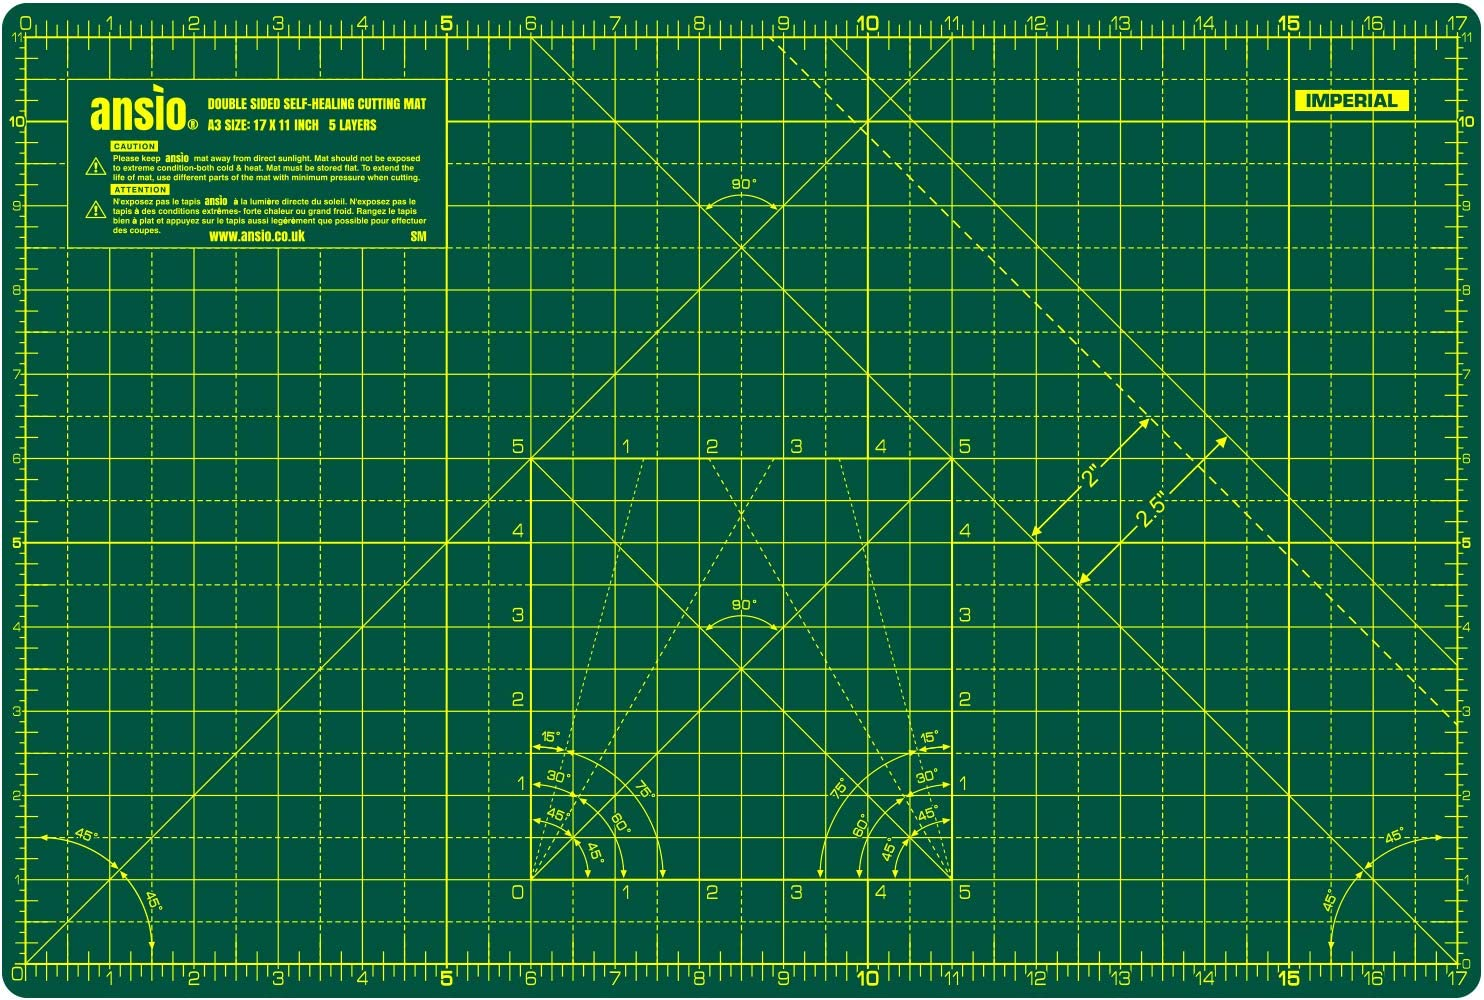 """Sew Easy Premium Quality Double Sided Cutting Mat 12/"""" x 9/"""" and 300 x 200mm"""